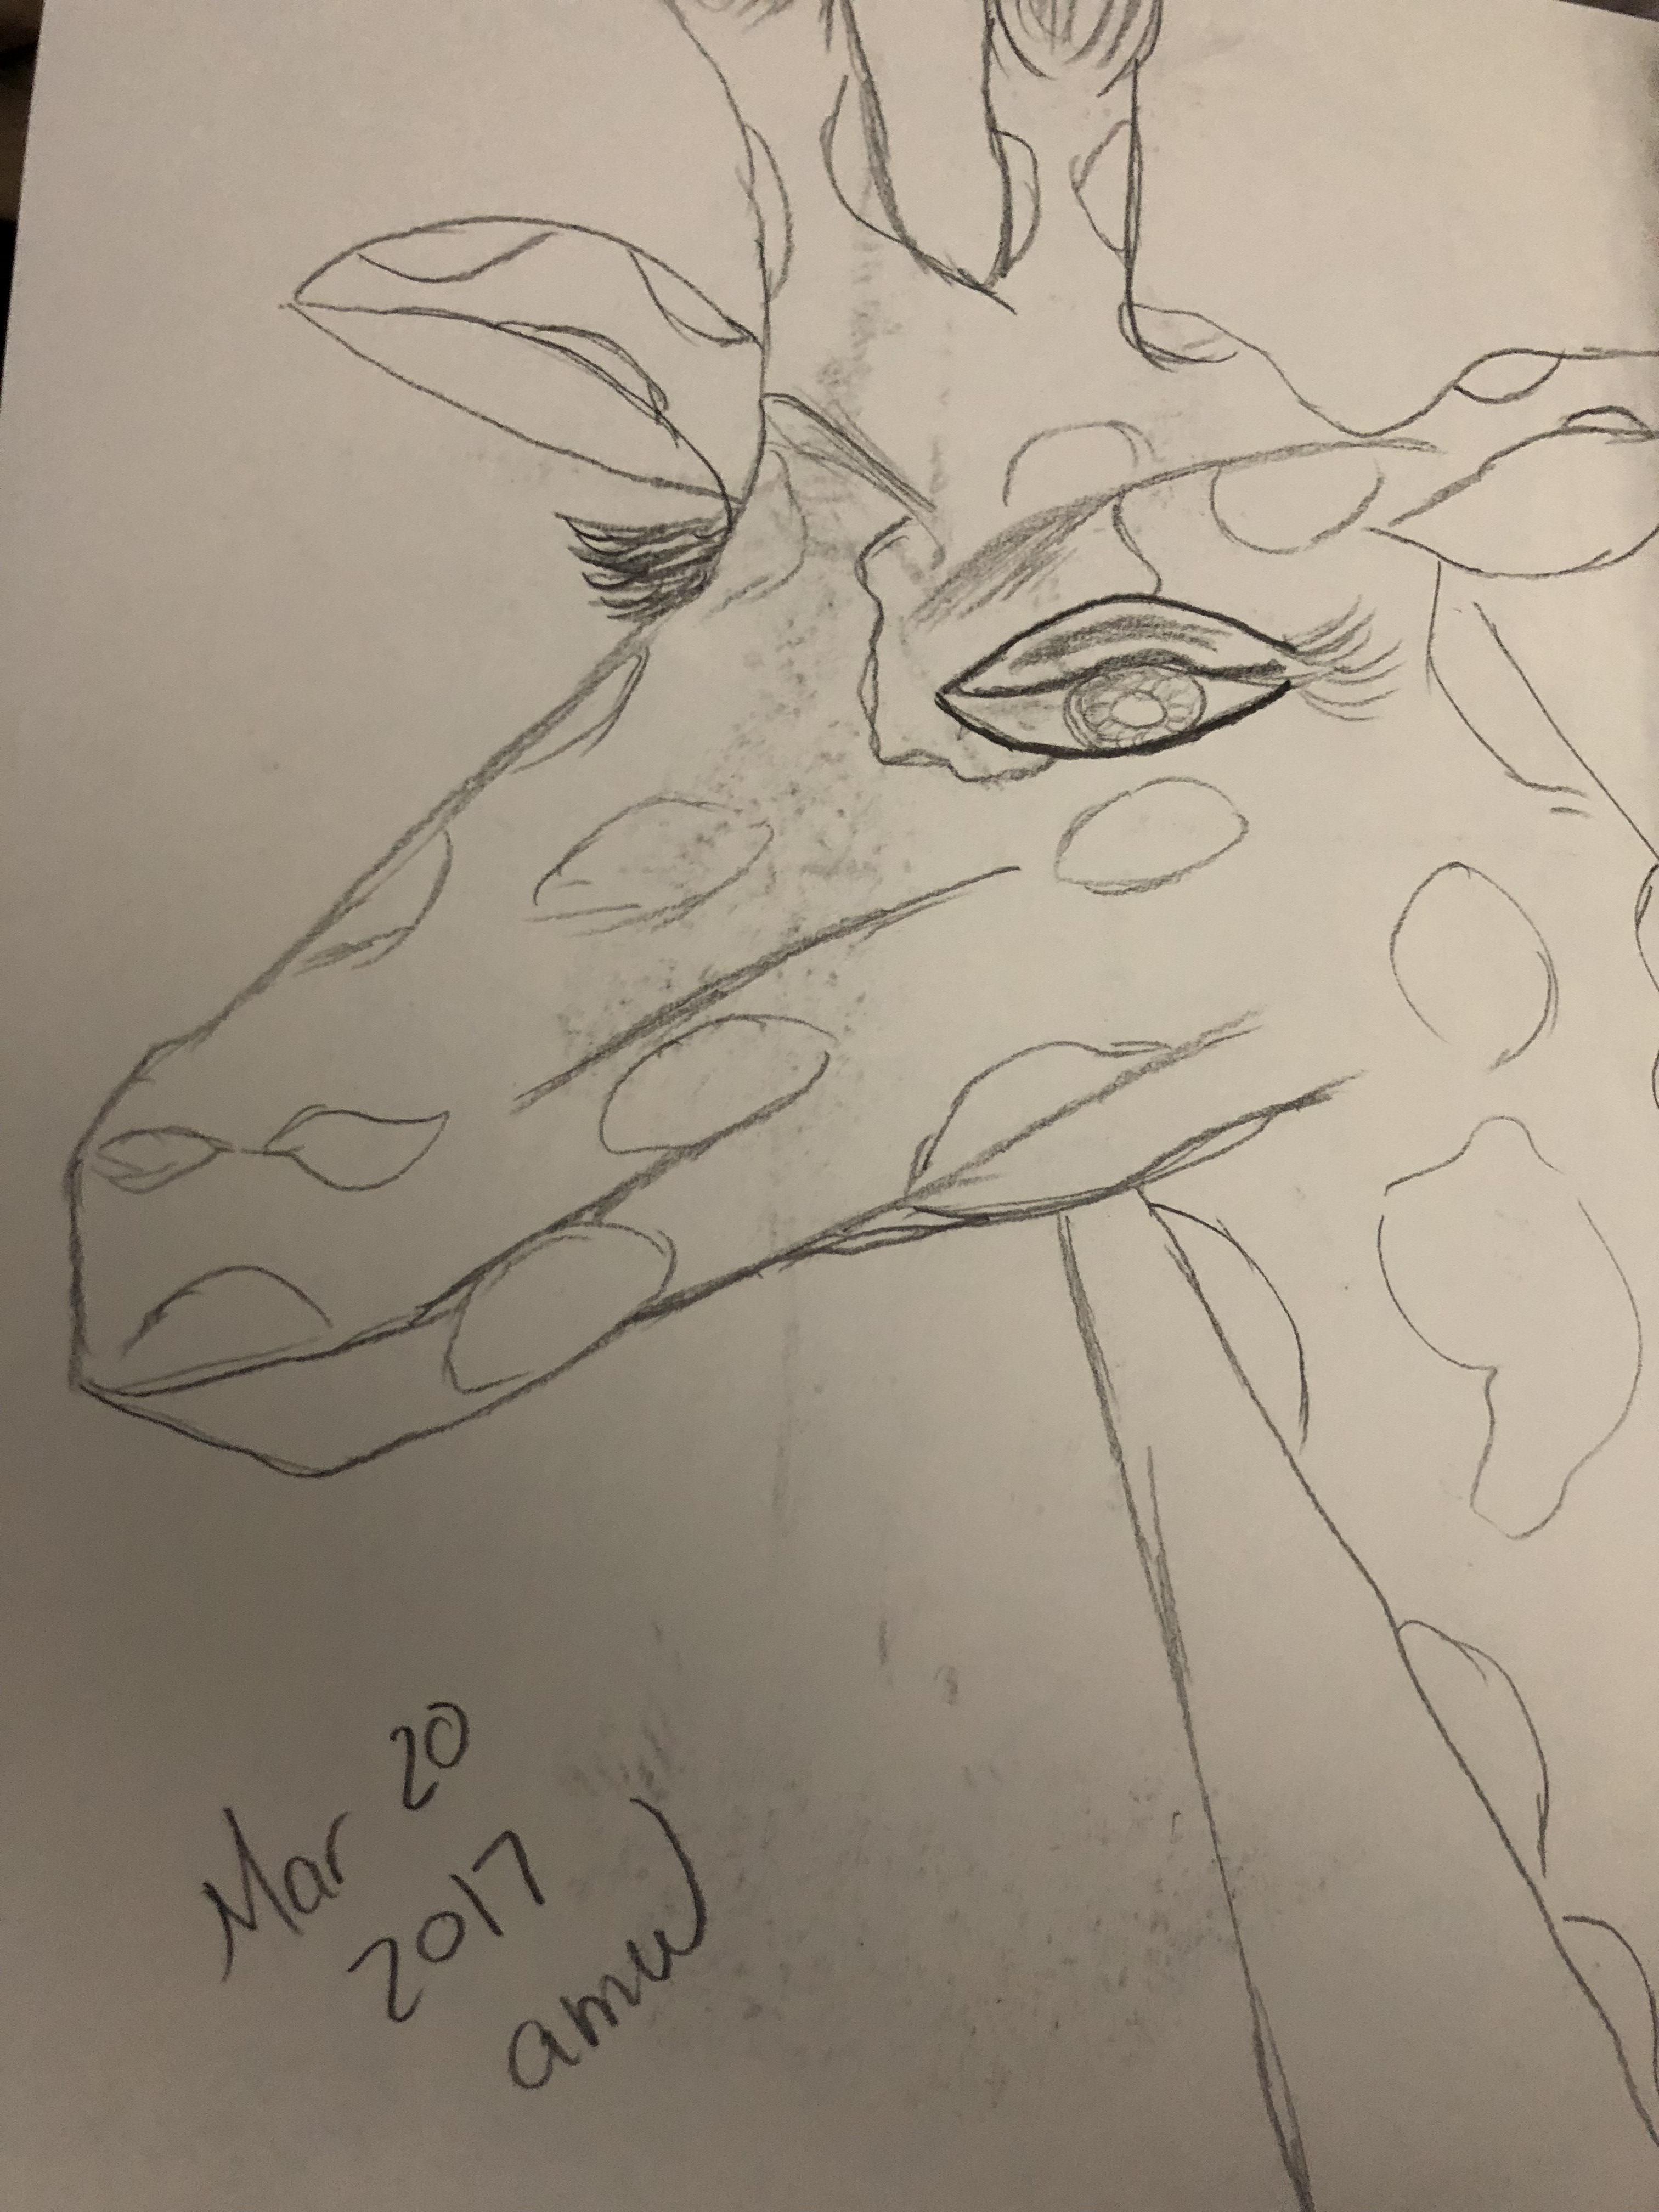 april the mommy giraffe